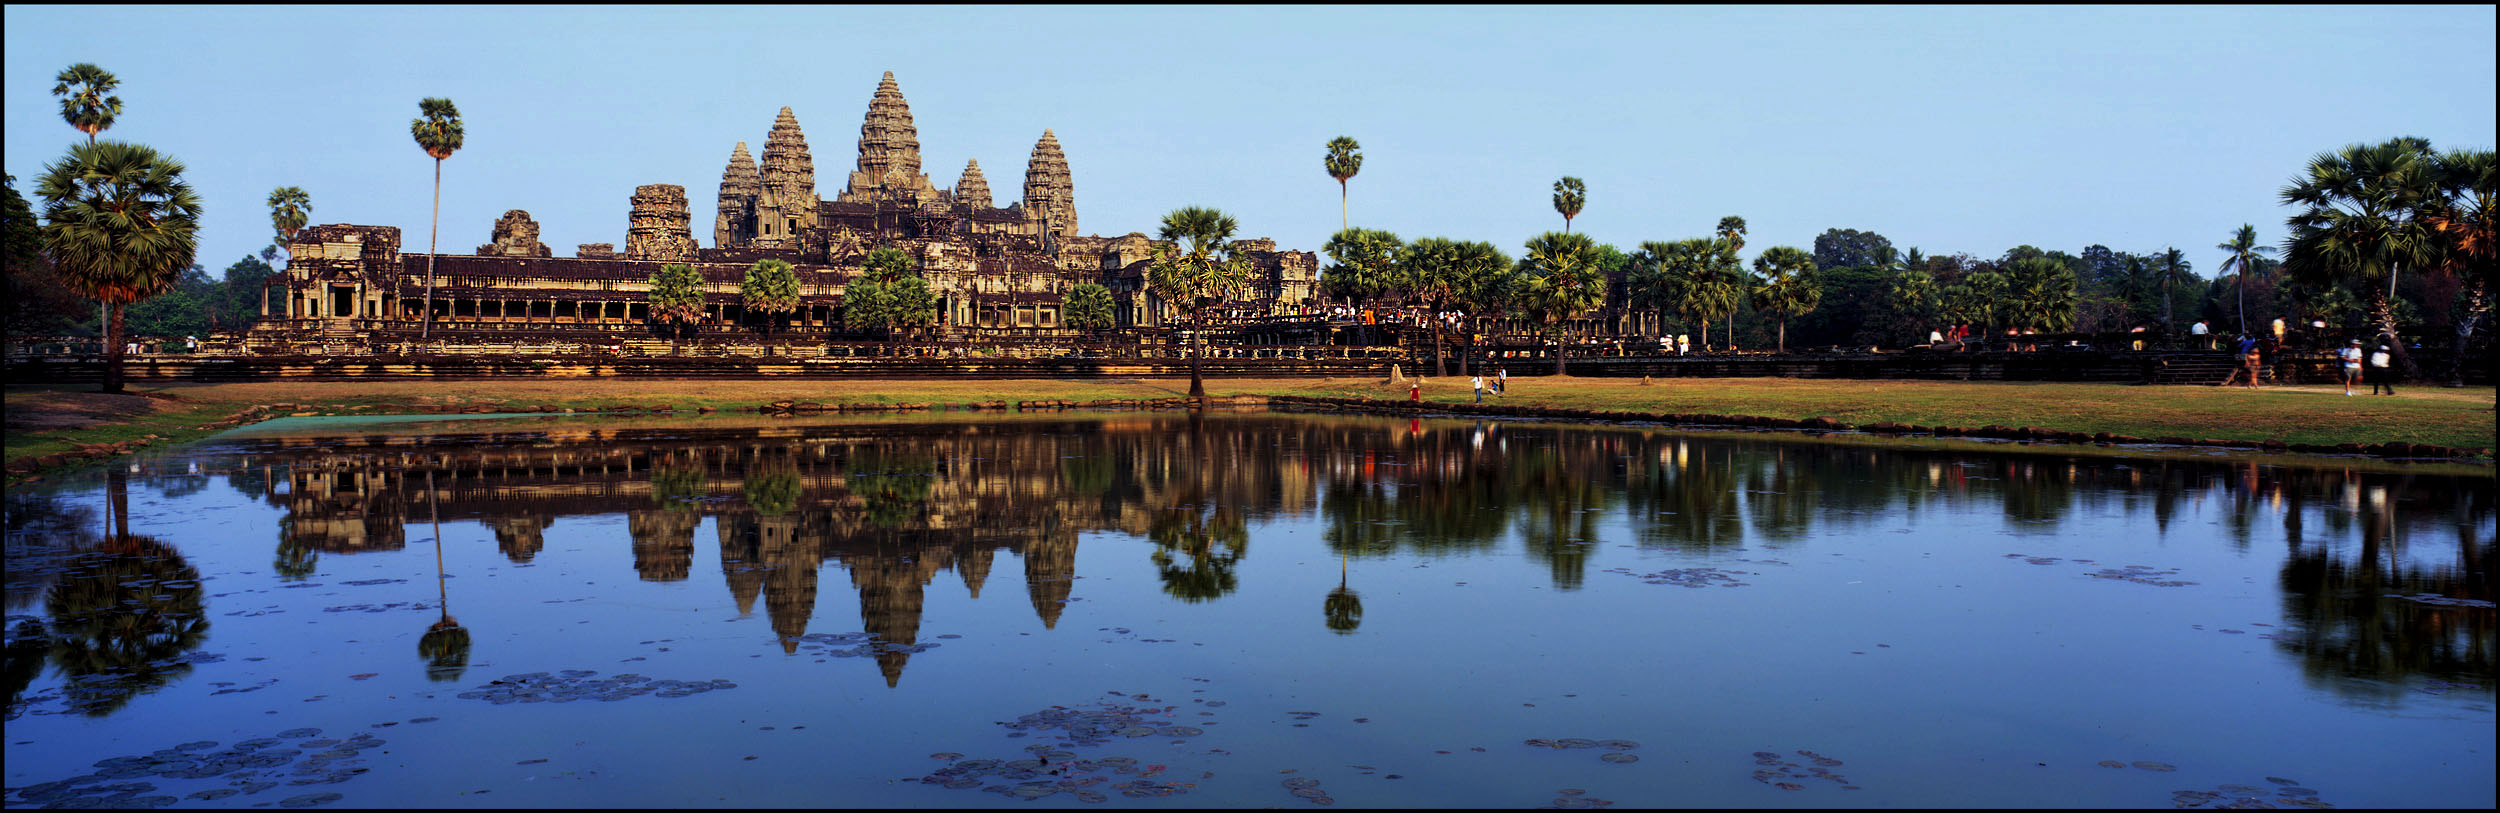 angkor wat temple cambodia author h michael